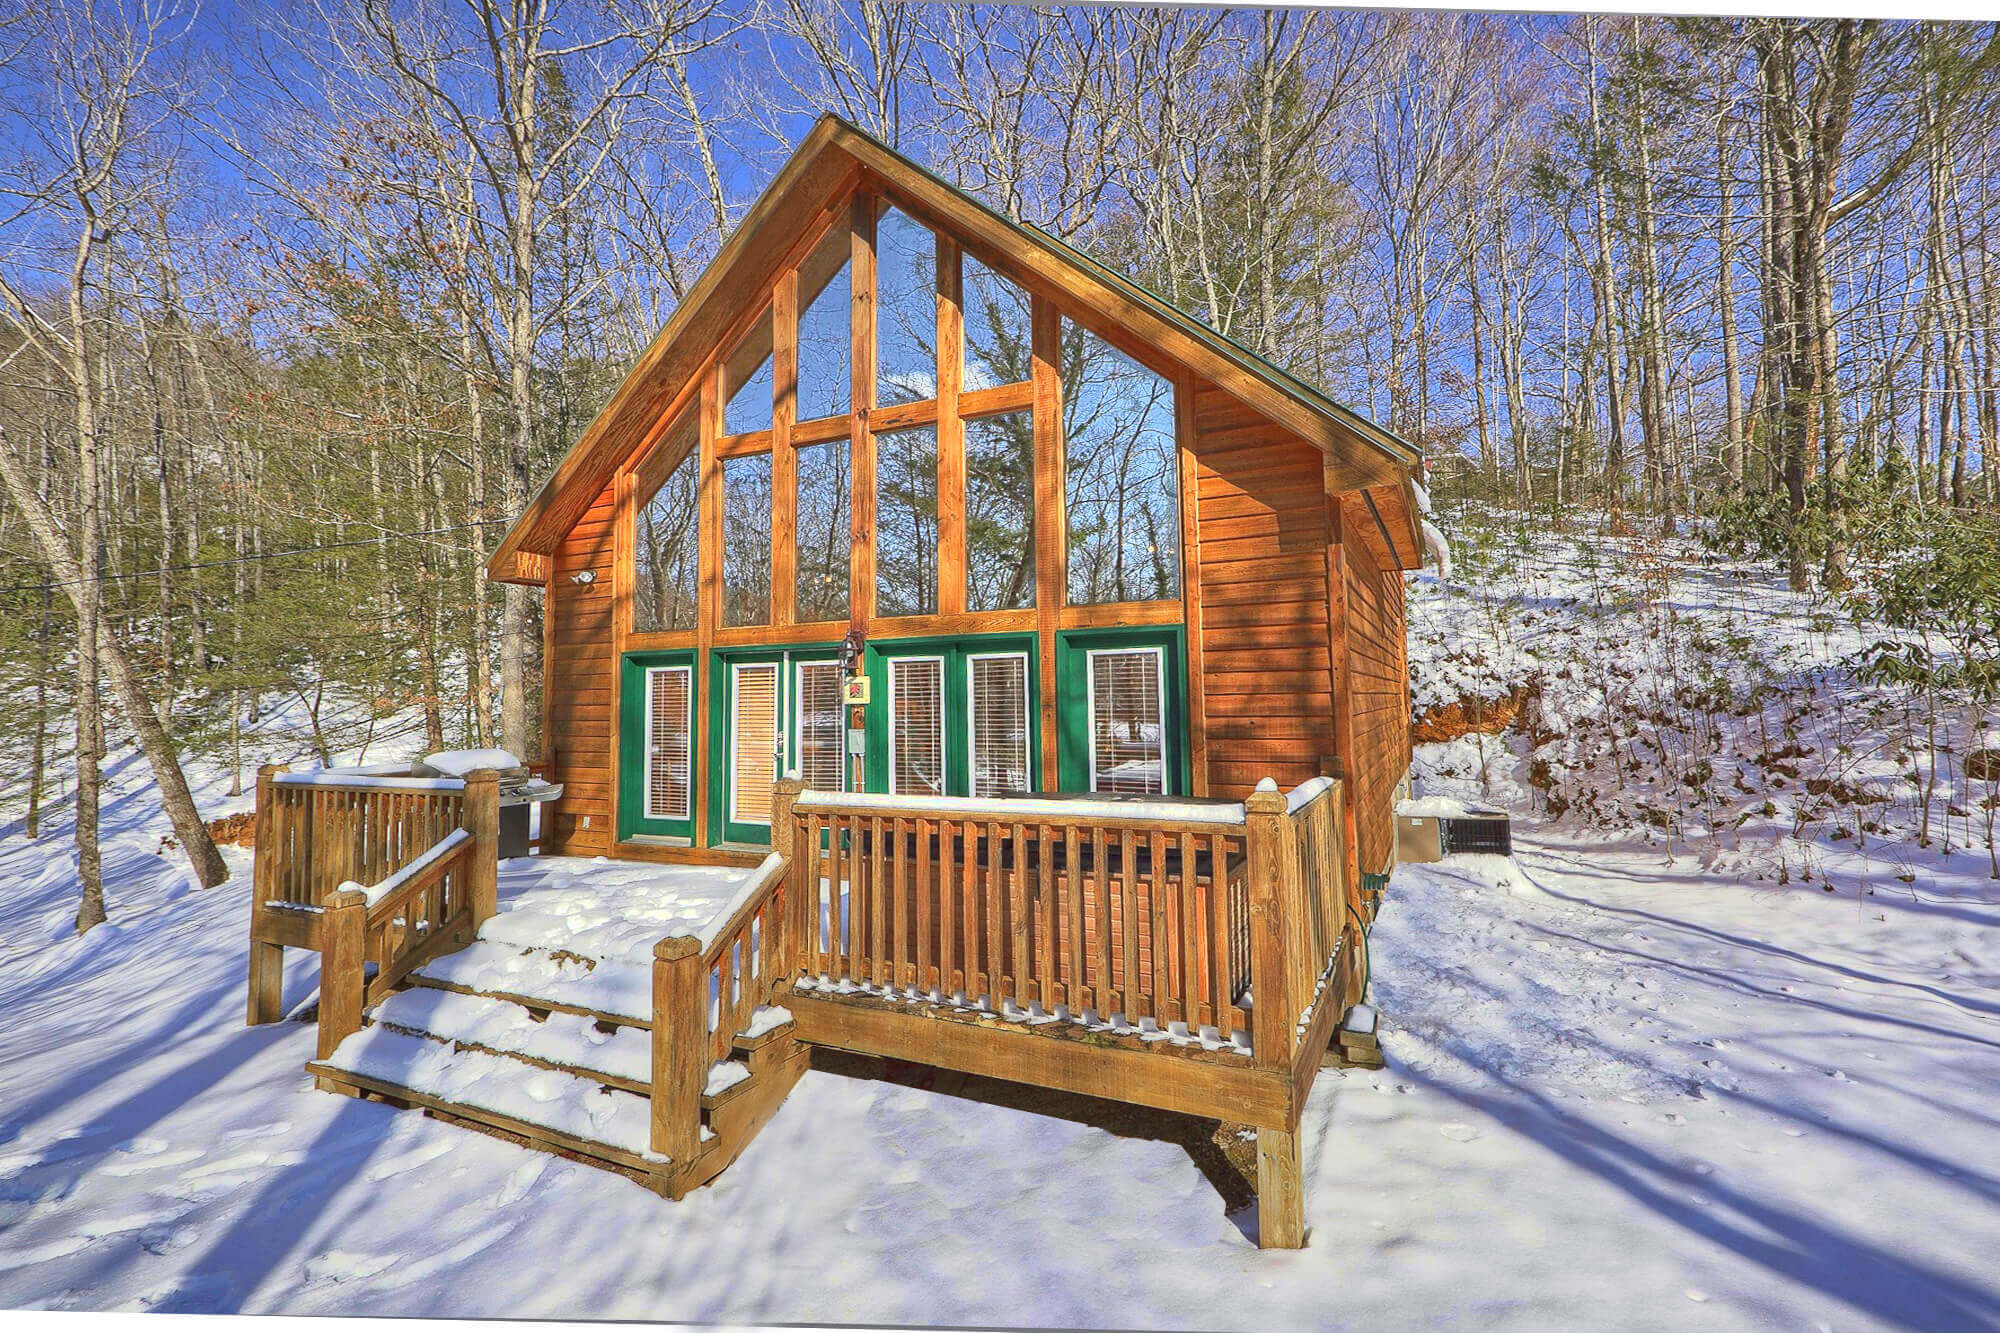 Smoky mountain romance 1 bedroom secluded private cabin for Smoky mountain nc cabin rentals